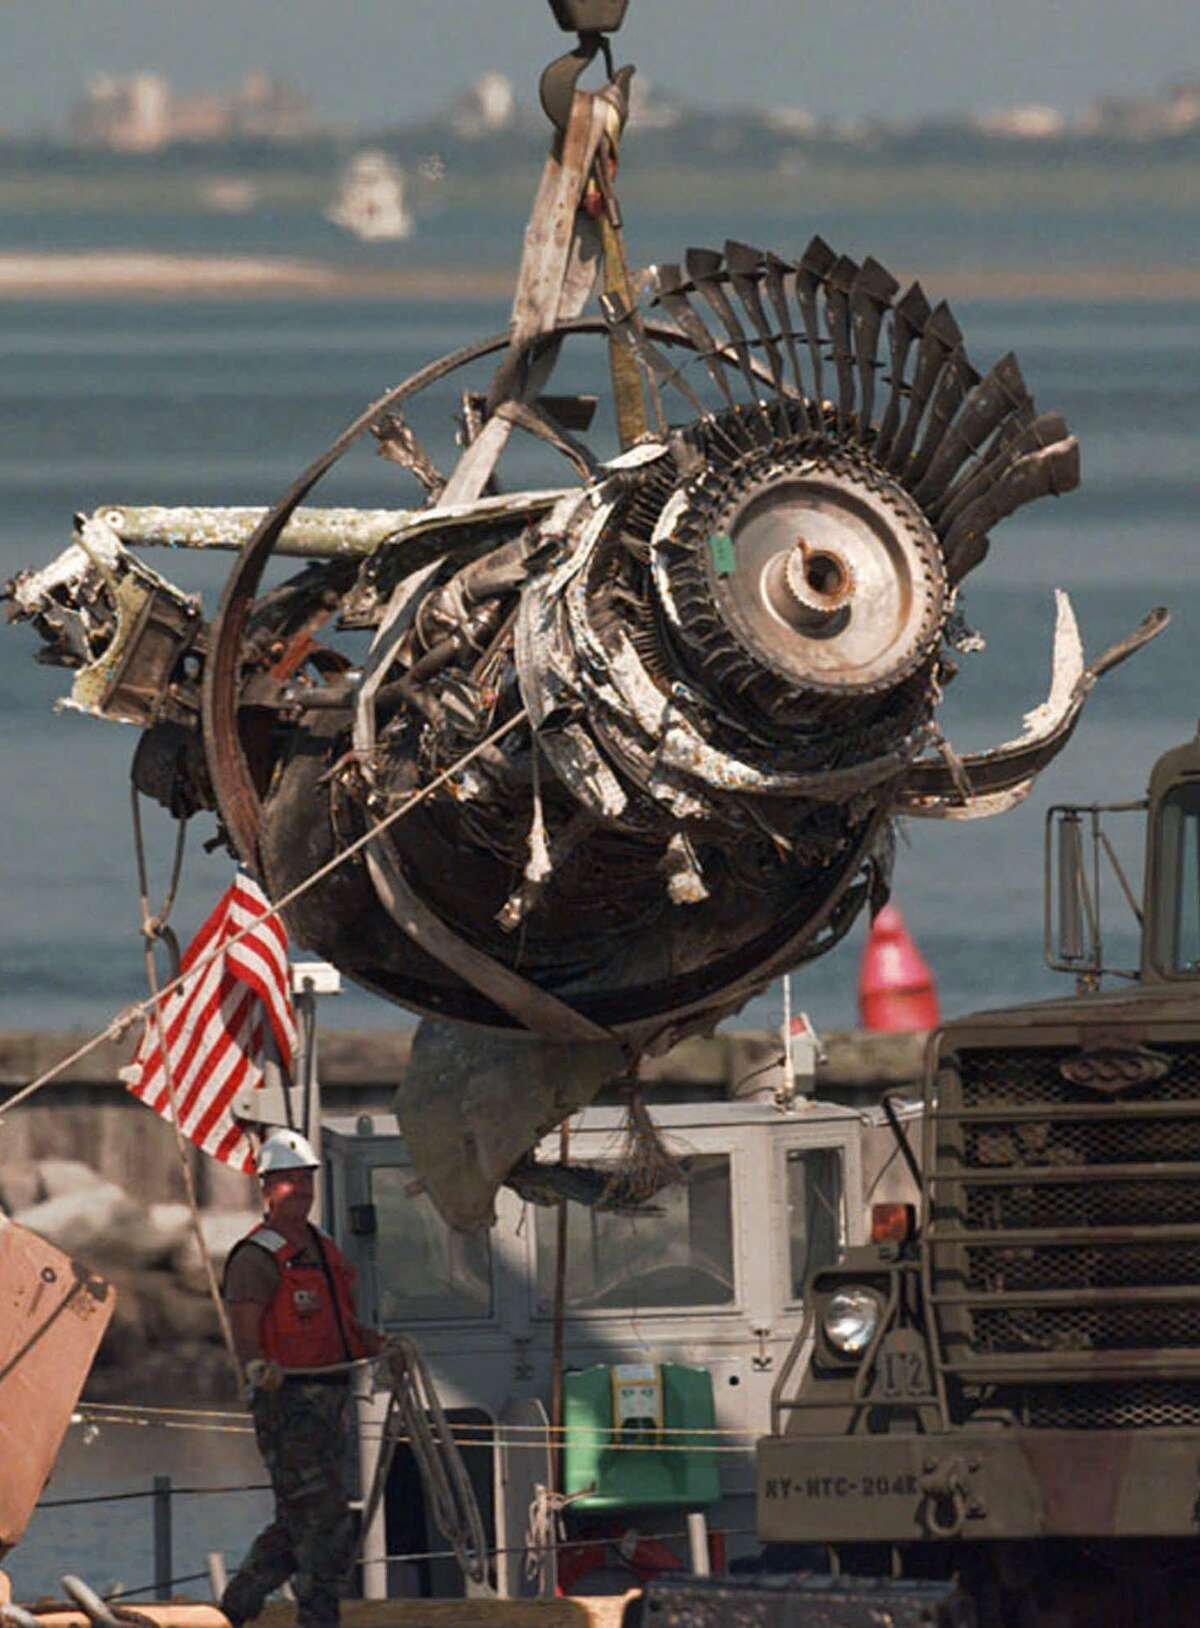 FILE - In this Aug. 15, 1996, file photo, the final engine to be salvaged from the wreckage of TWA Flight 800 is loaded by crane onto a truck at the U.S. Coast Guard Shinnecock Station in Hampton Bays, N.Y. Twenty years after the Boeing 747 carrying 230 people exploded in a ball of fire, killing everyone on board, some still debate National Transportation Safety Board findings that the aircraft was brought down by a center fuel-tank explosion ignited by a spark from a short circuit. (AP Photo/Mark Lennihan, File) ORG XMIT: NYR302